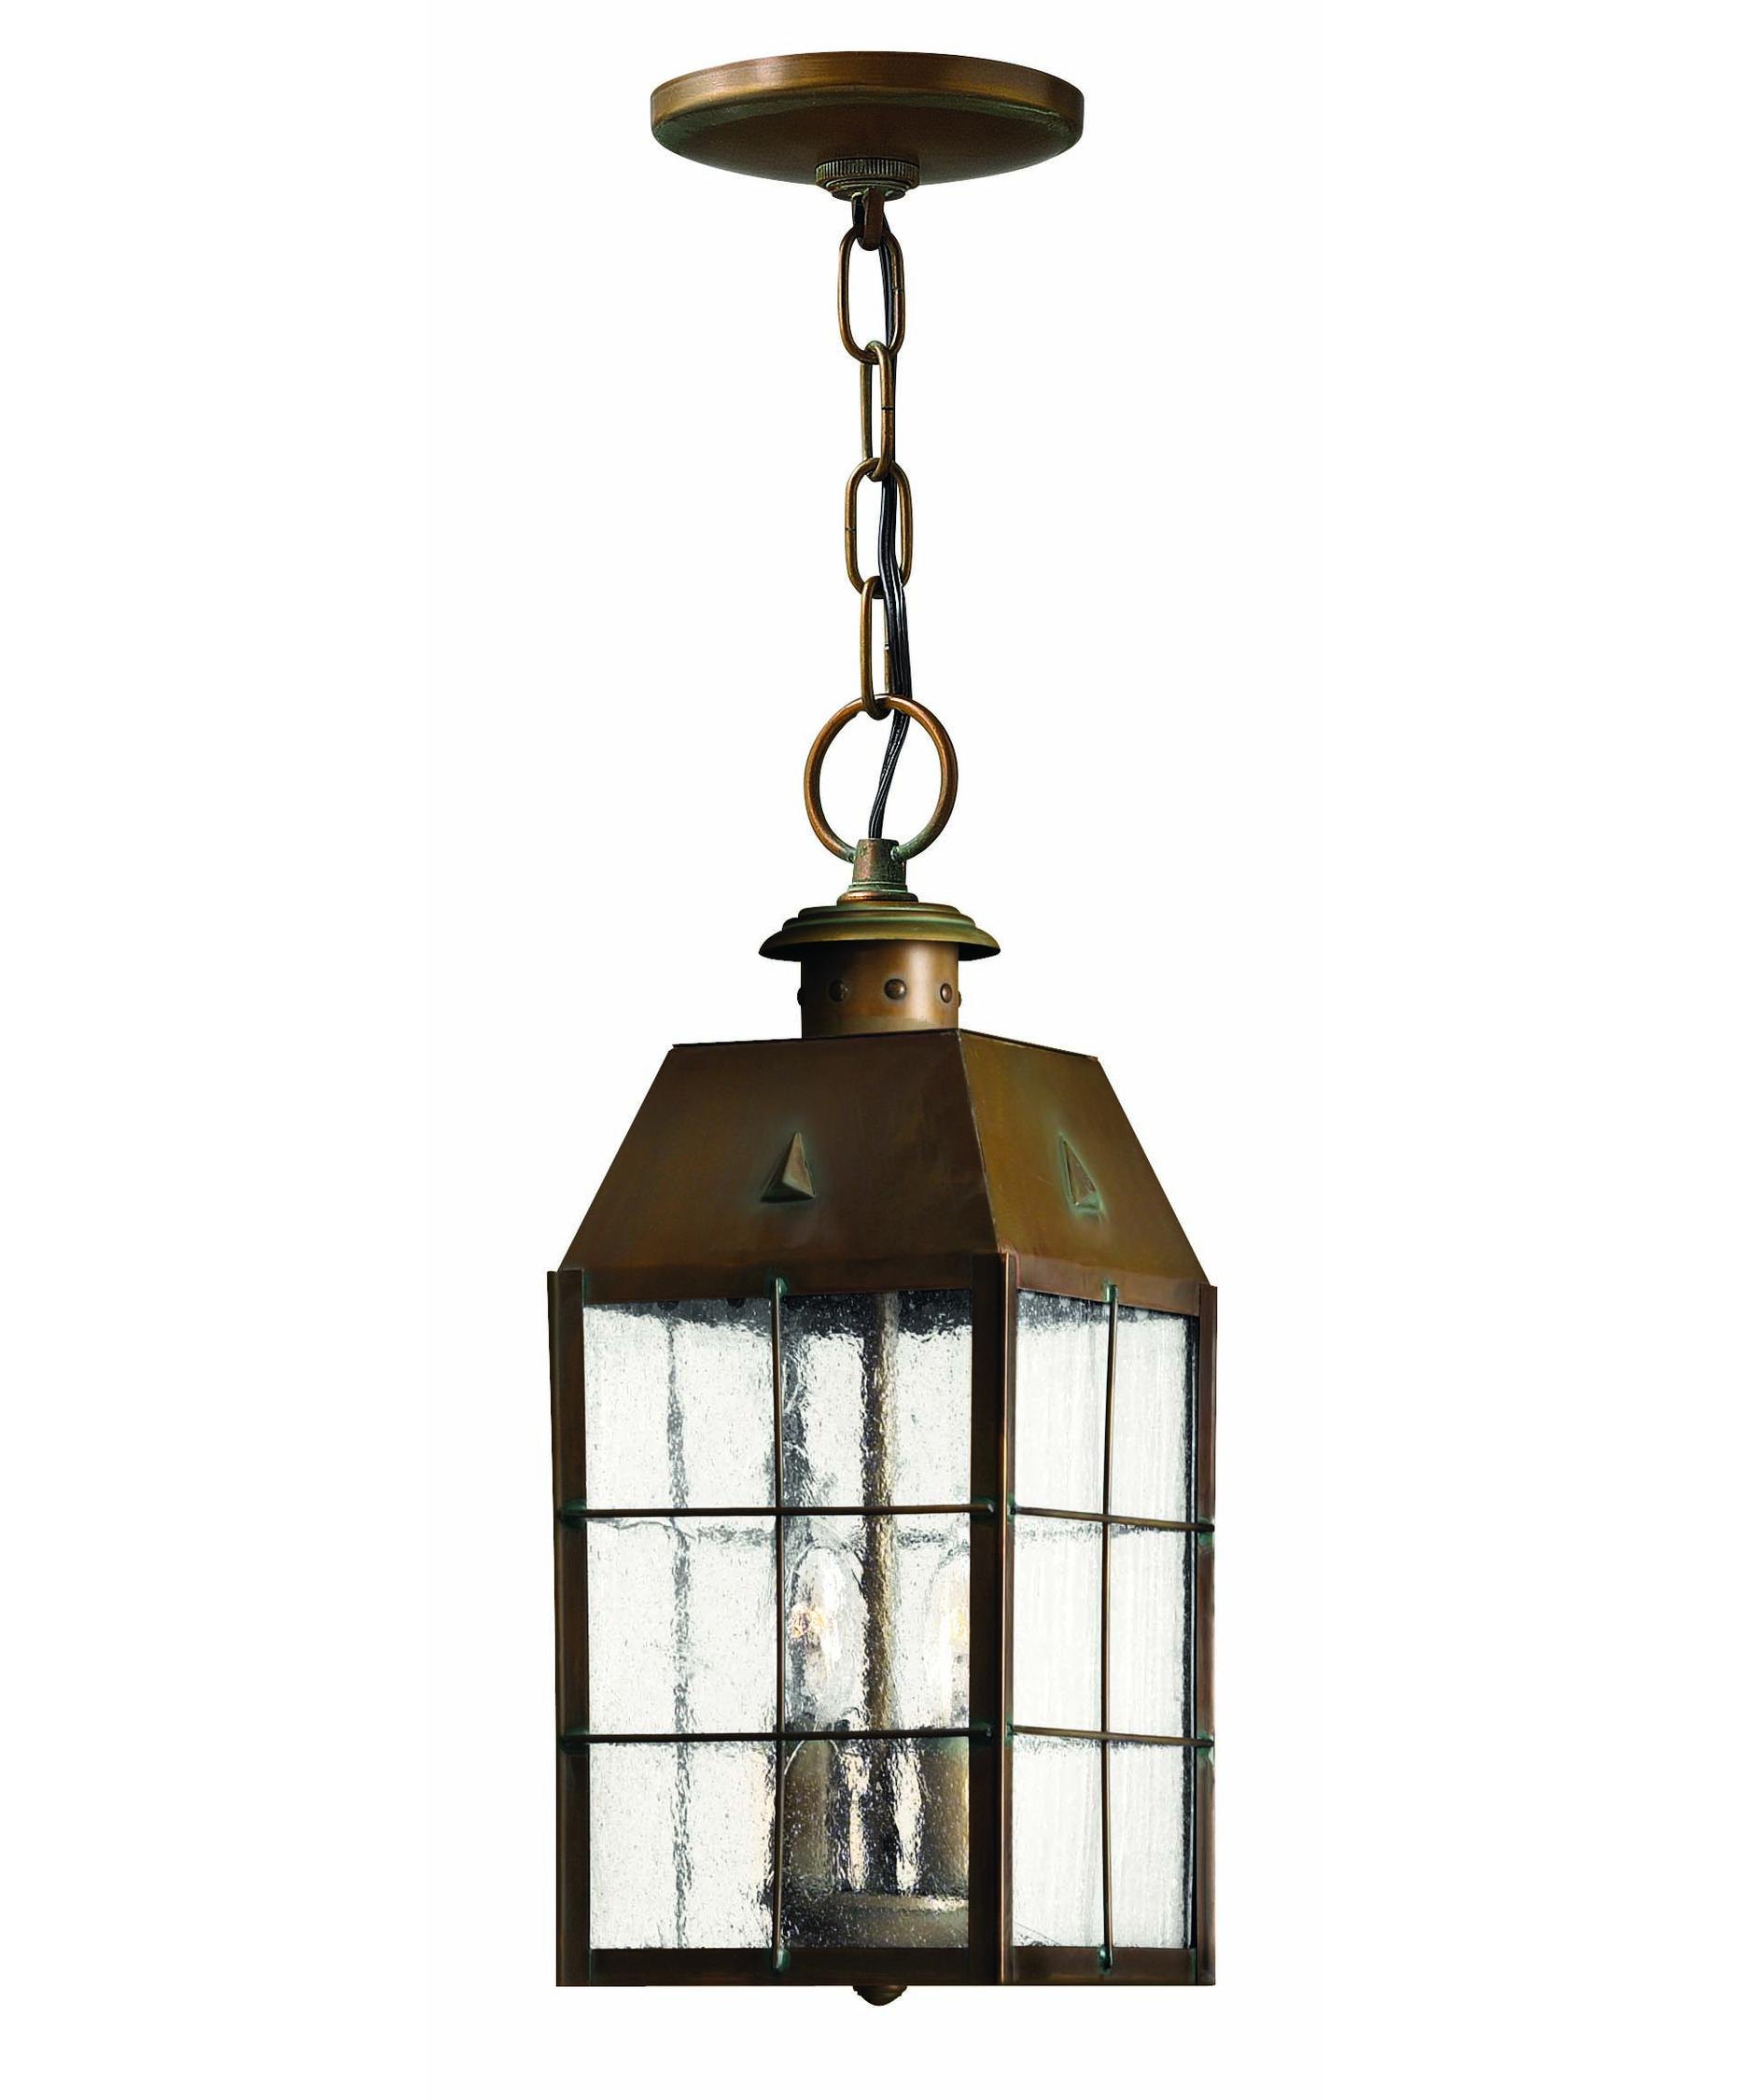 Outdoor hanging lighting - Shown In Aged Brass Finish And Clear Seedy Glass